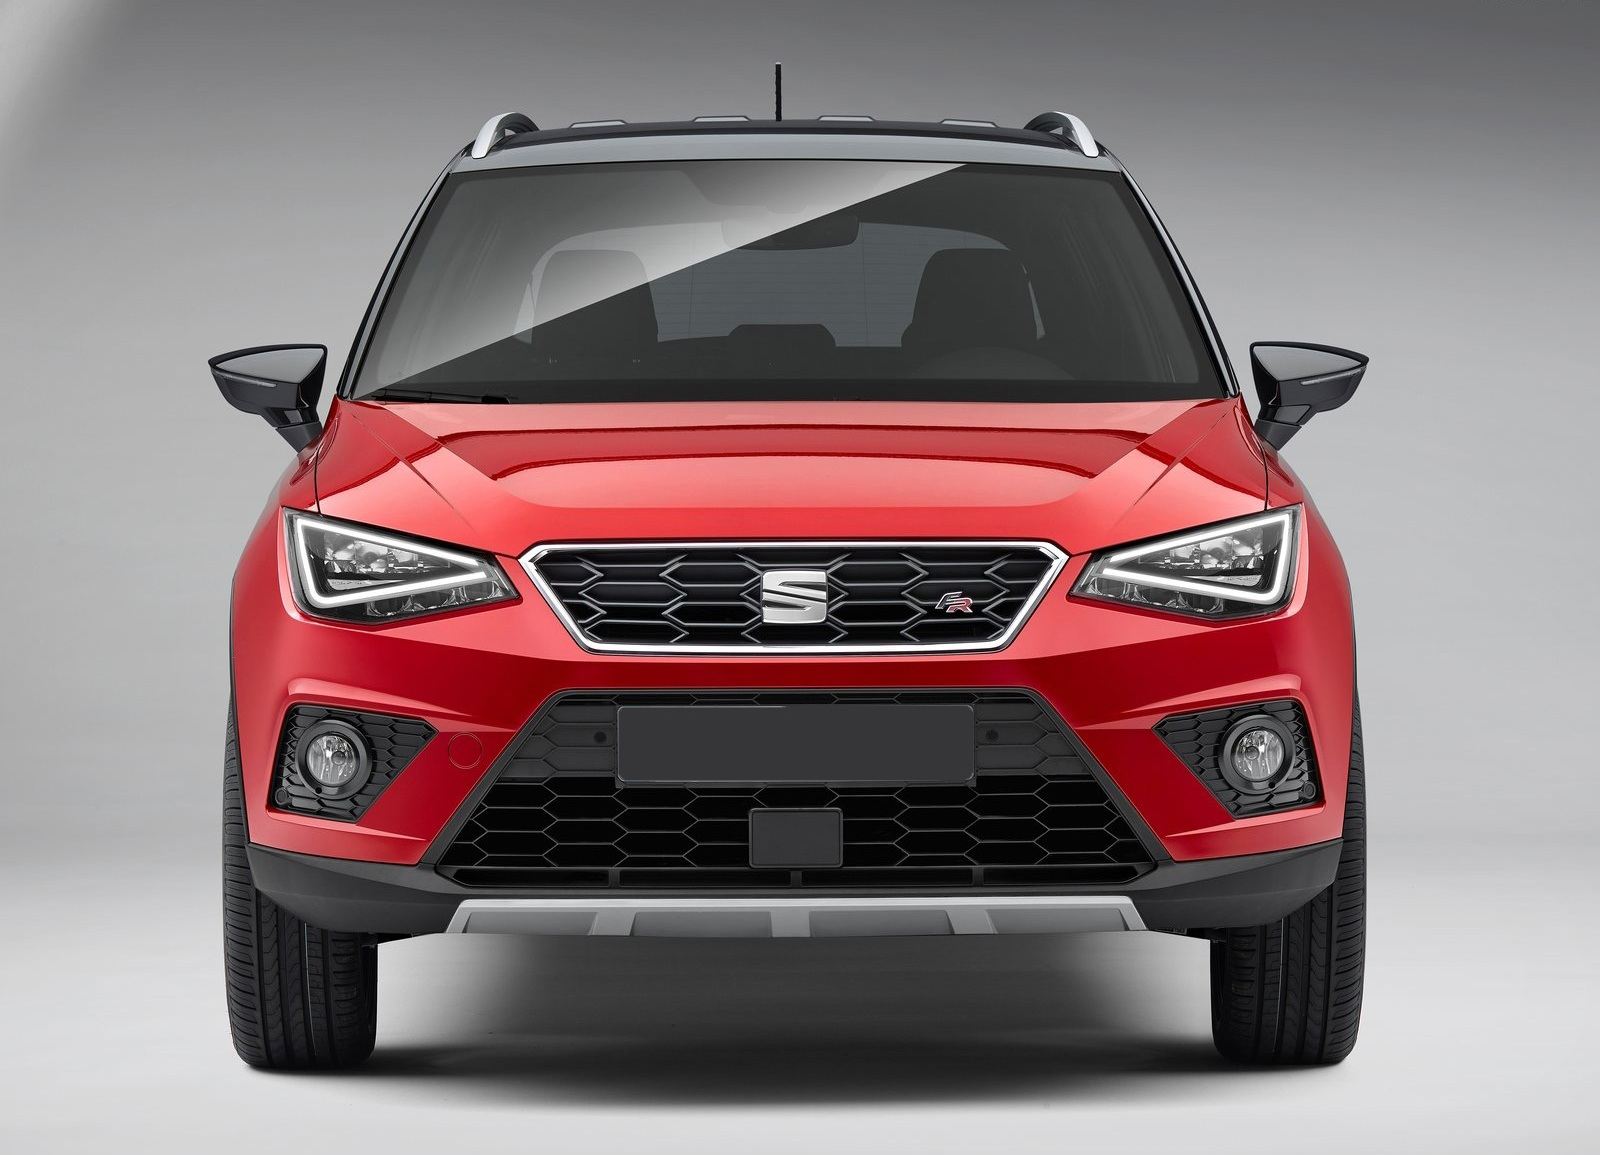 seat arona 2017 seat arona 2017 premi res images du petit suv urbain de seat seat auto evasion. Black Bedroom Furniture Sets. Home Design Ideas